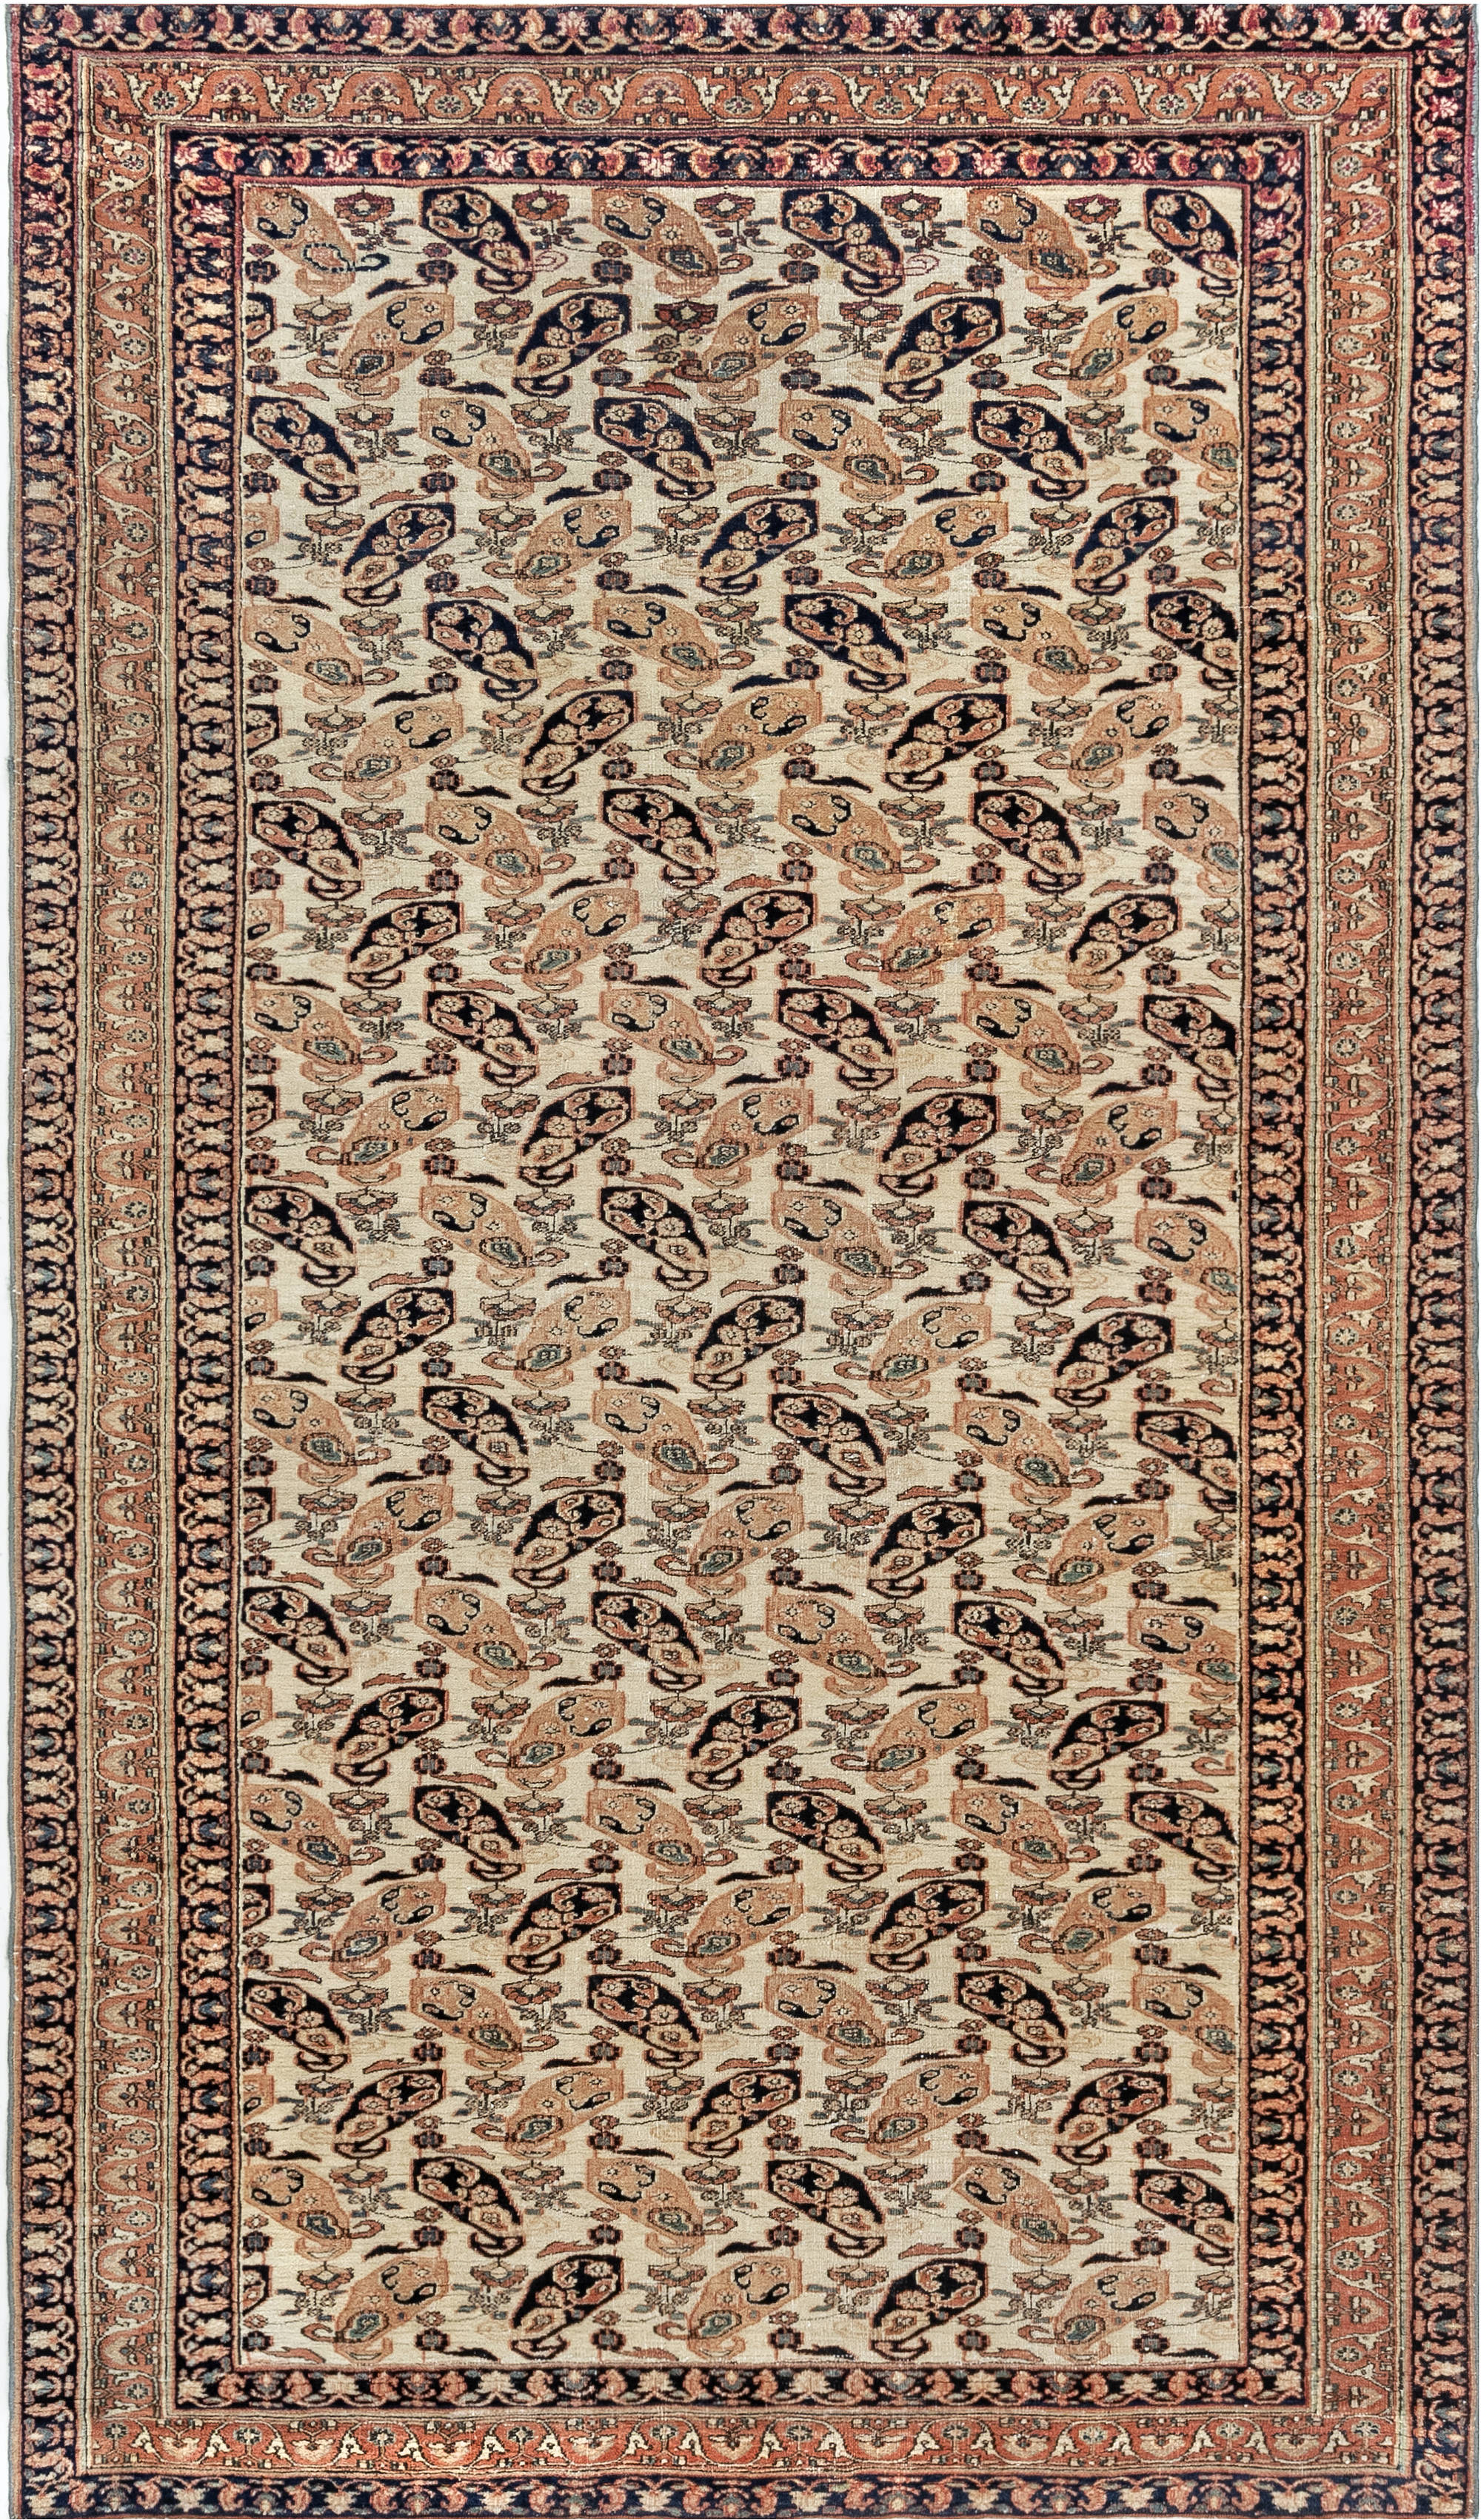 Antique Persian Tabriz Rug BB7014